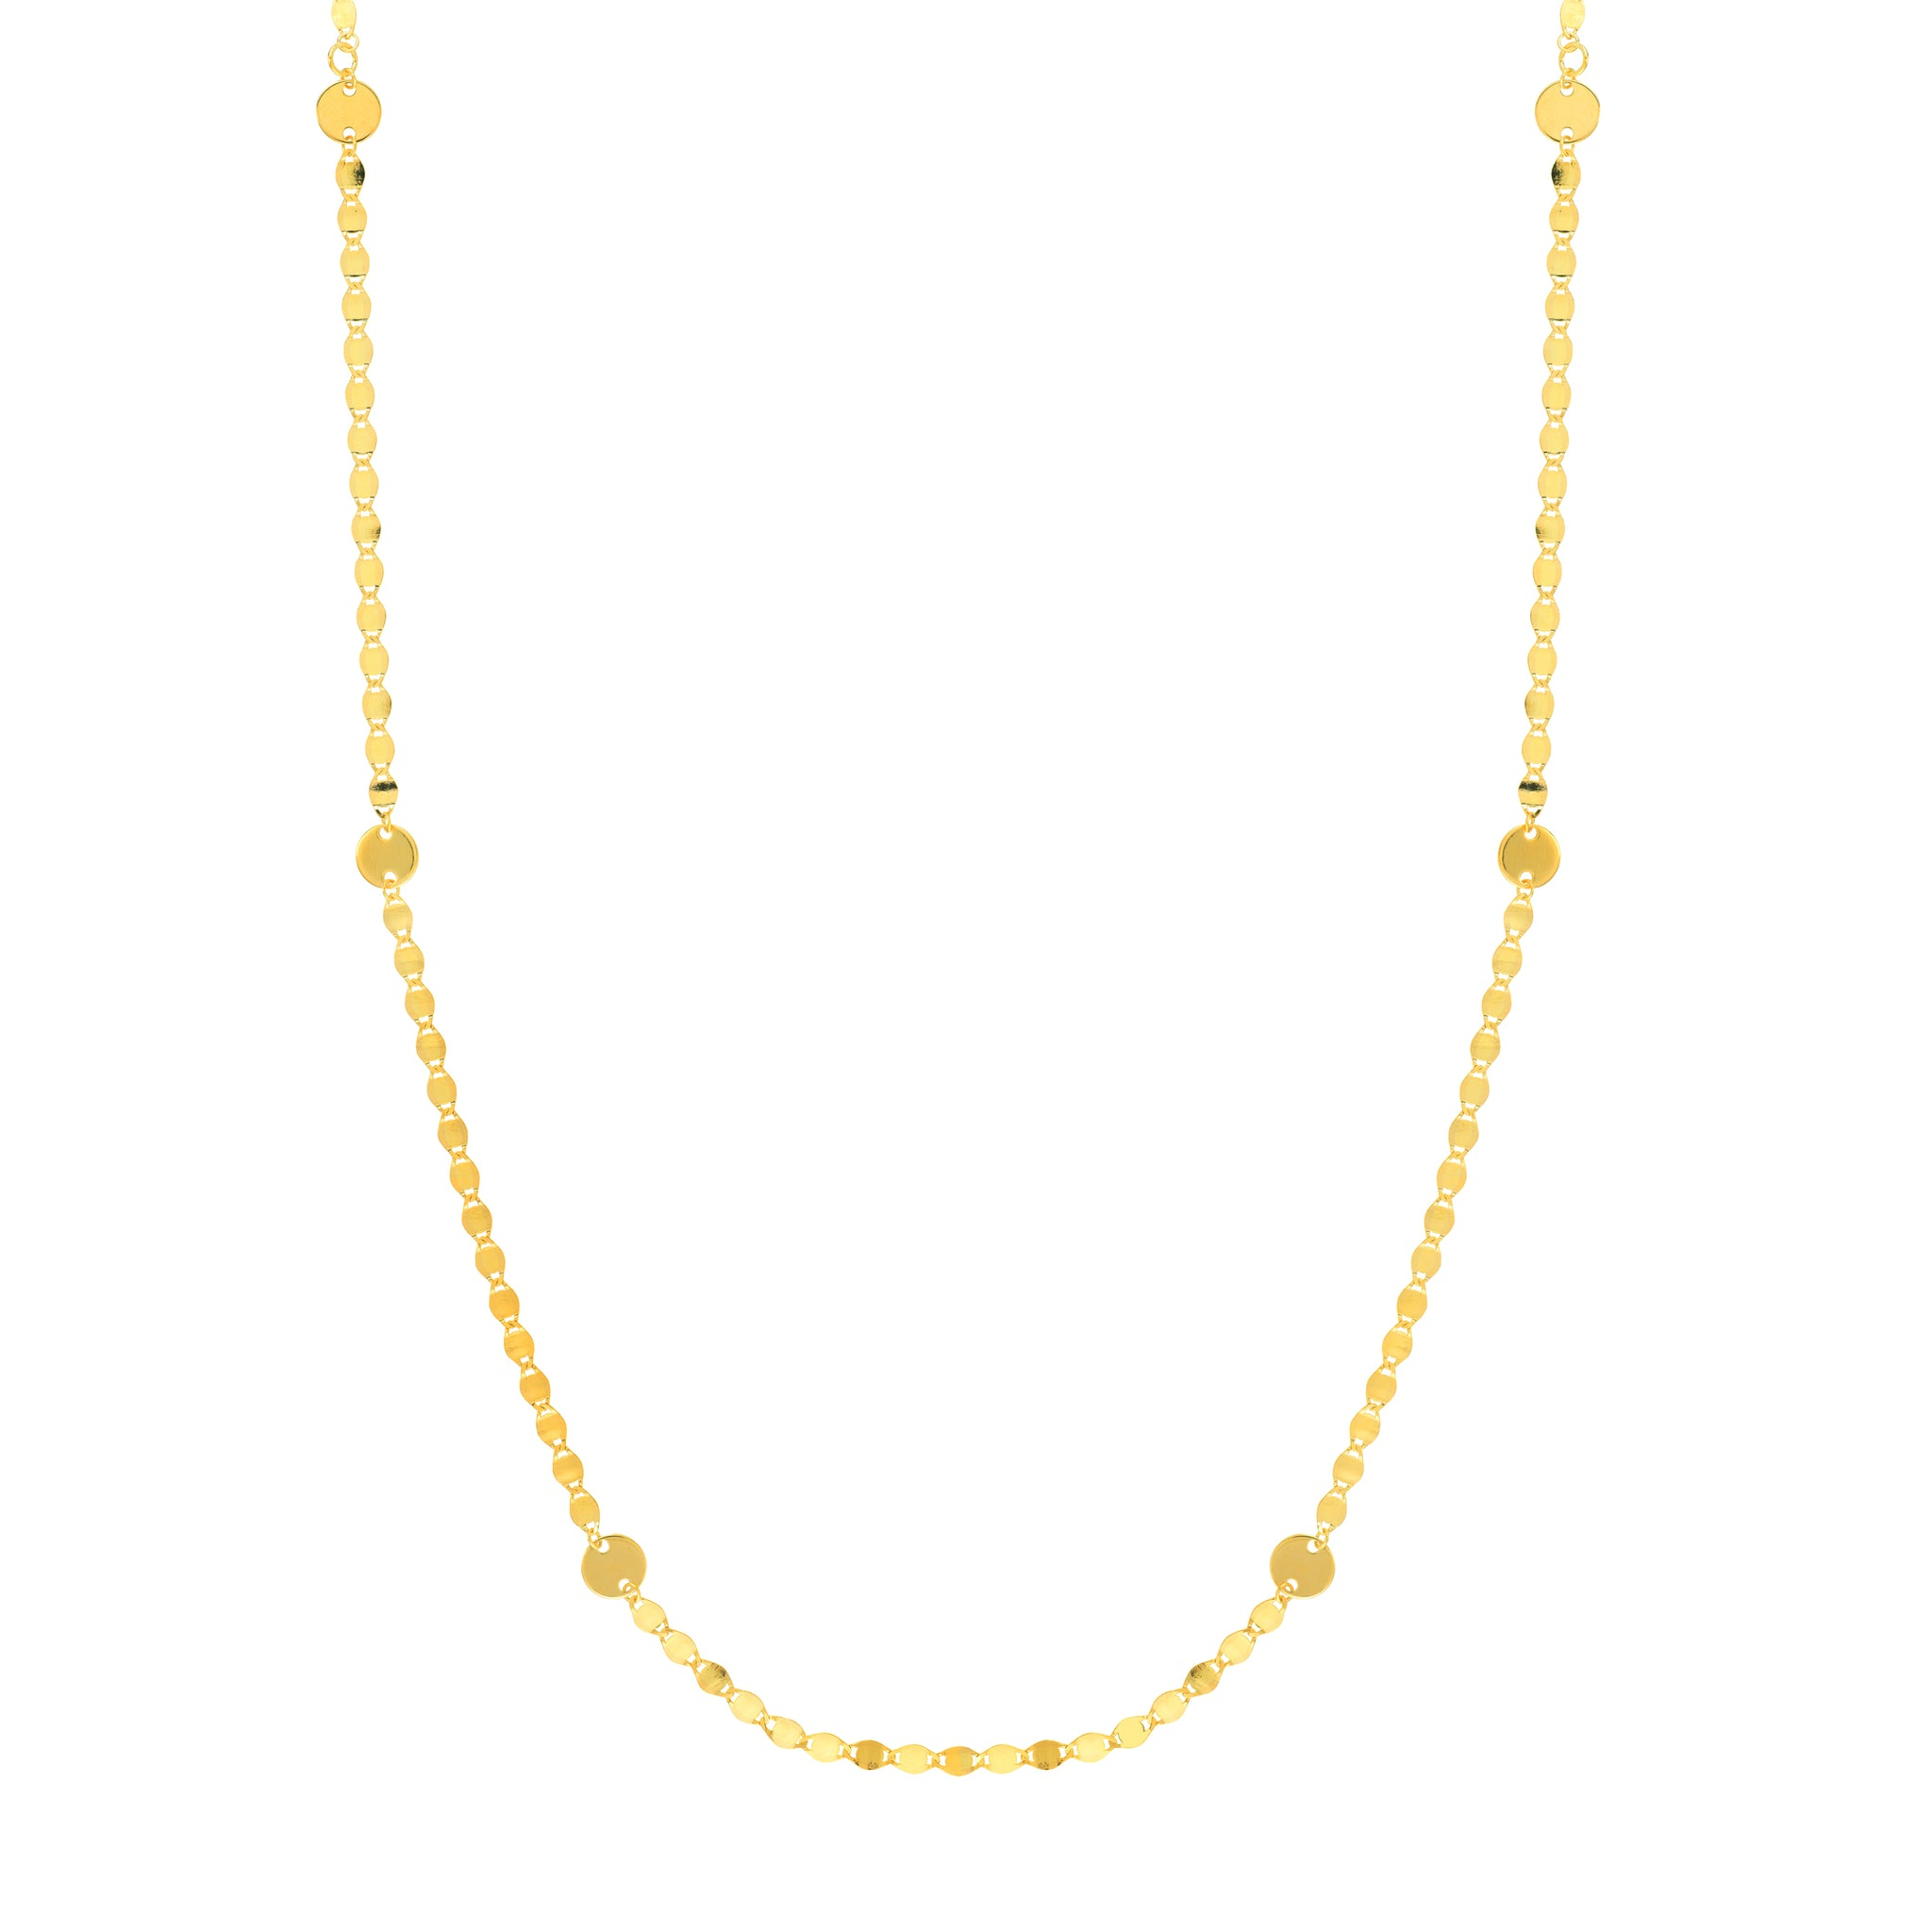 Hemsleys Collection 14K Yellow Gold Valentino Link with Round Discs Necklace